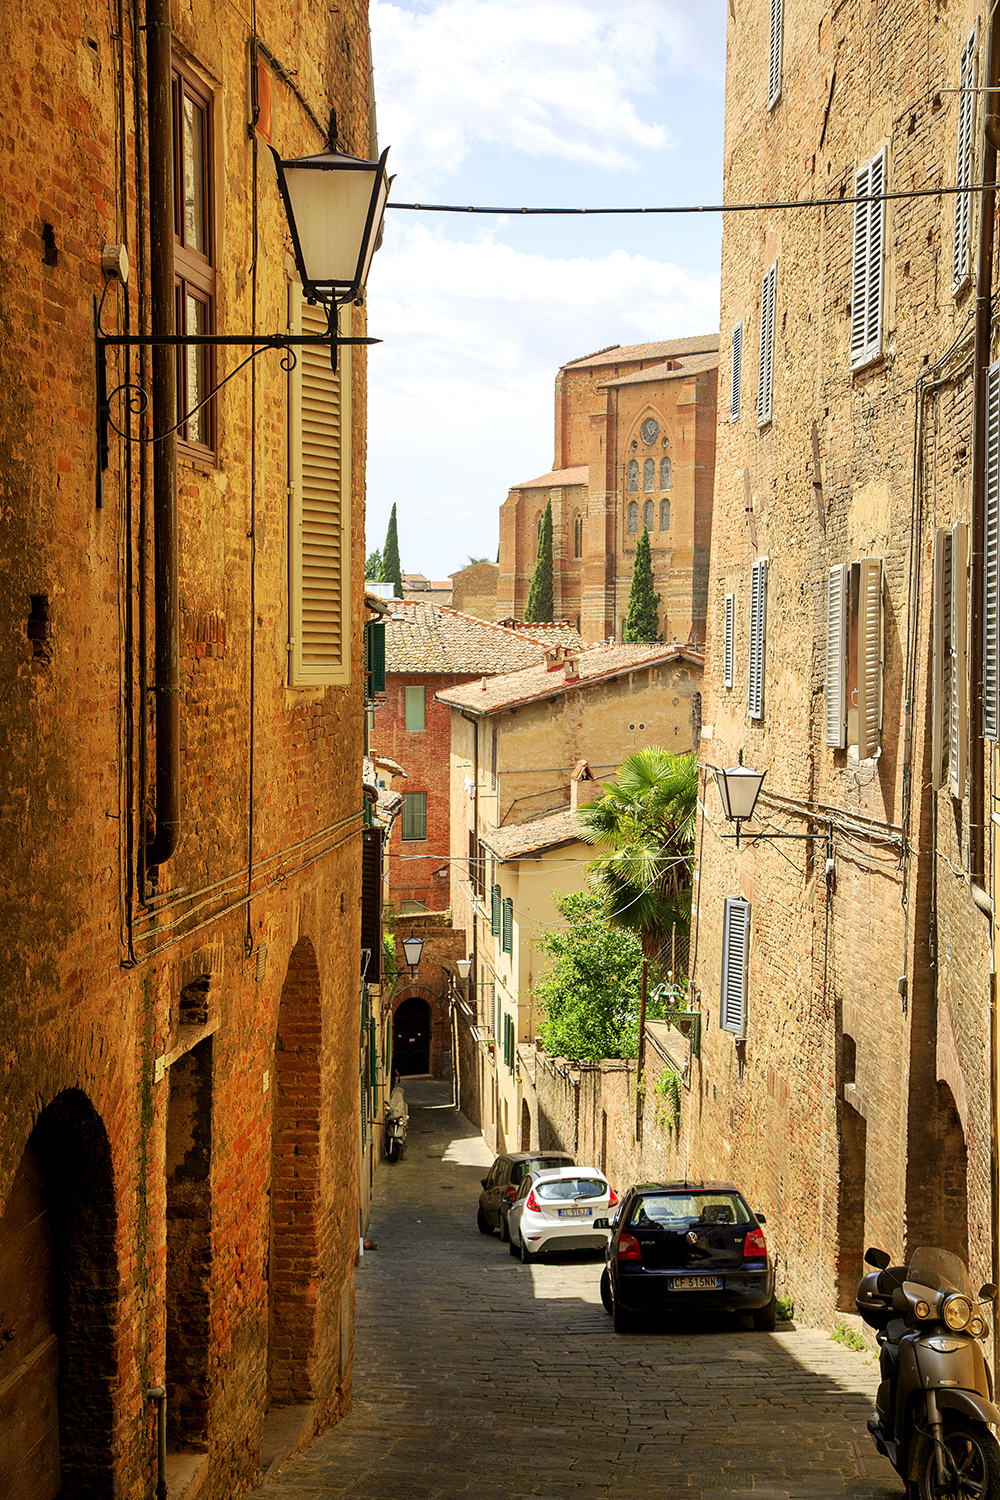 Suffusing My Senses In Siena - Image 33